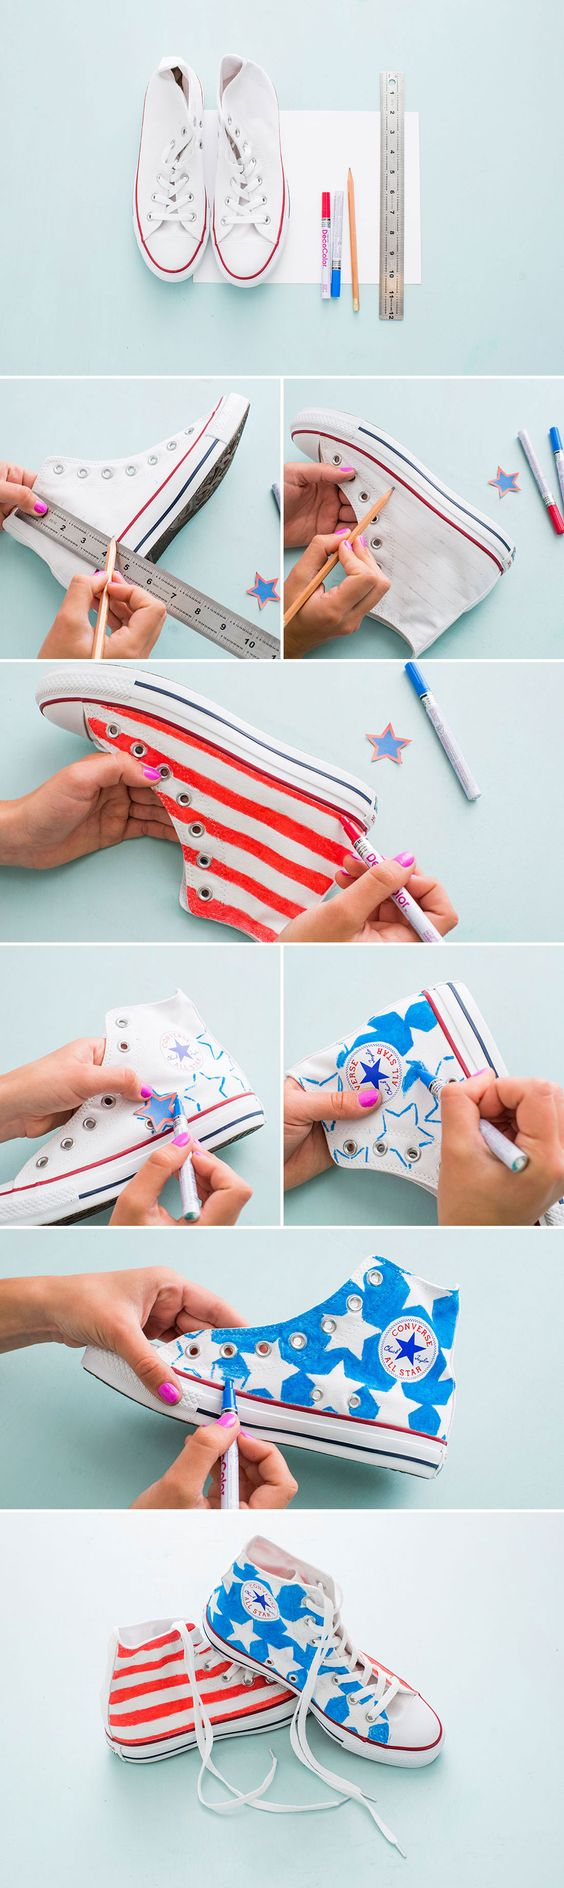 Making these sneakers for the 4th is a must. 1. Sketch out your patriotic design on a piece of paper to avoid making mistakes on the sneaks. 2. Create 1/2-inch lines along the shoe to provide a grid for your pattern. 3. Grab your paint pens and color away!: